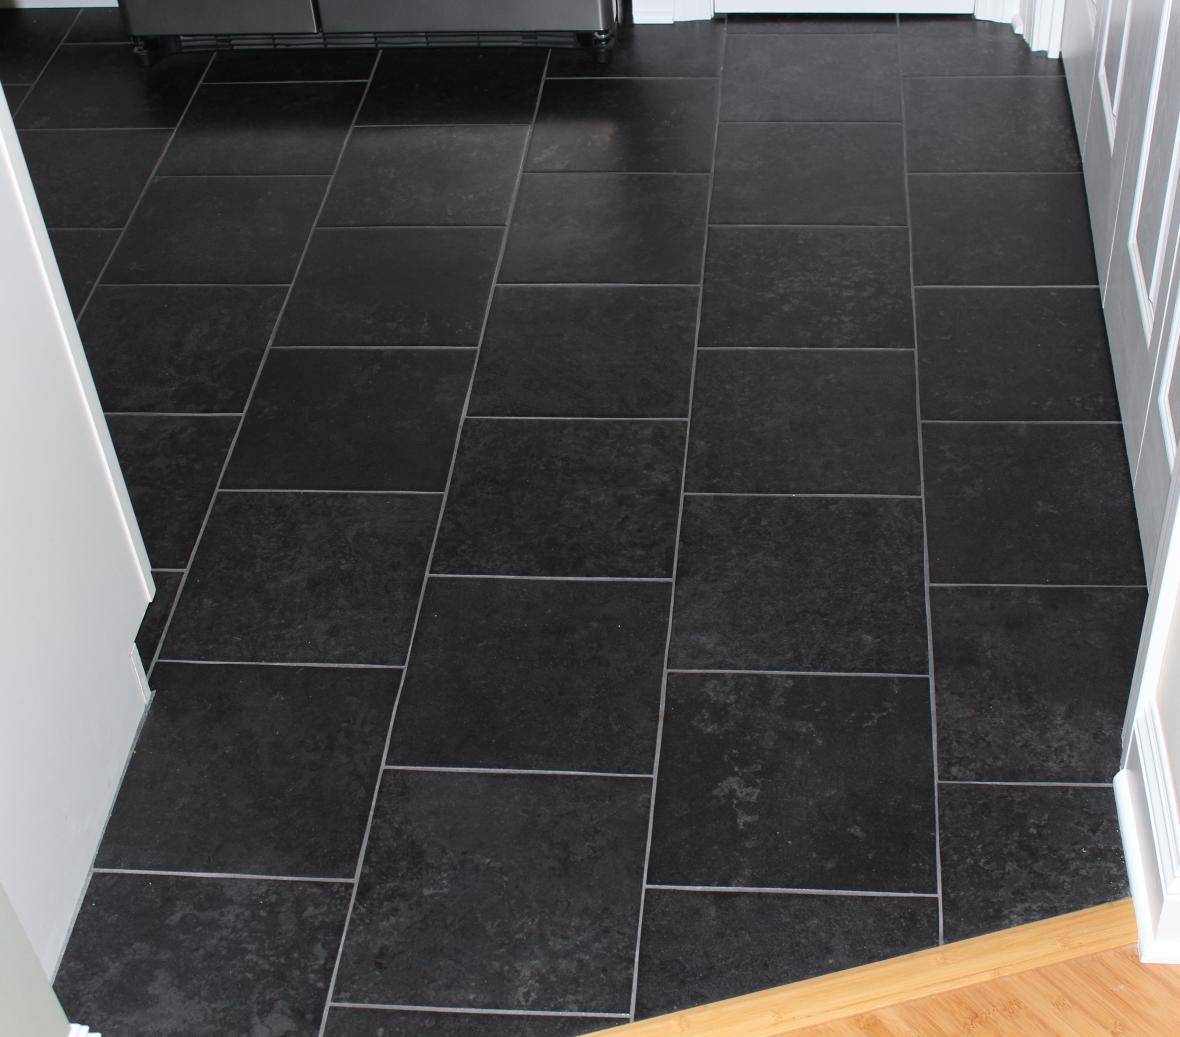 Stone Floor Tiles Kitchen Black And White Floor Tiles 150x150 Kitchen White Kitchen Floor